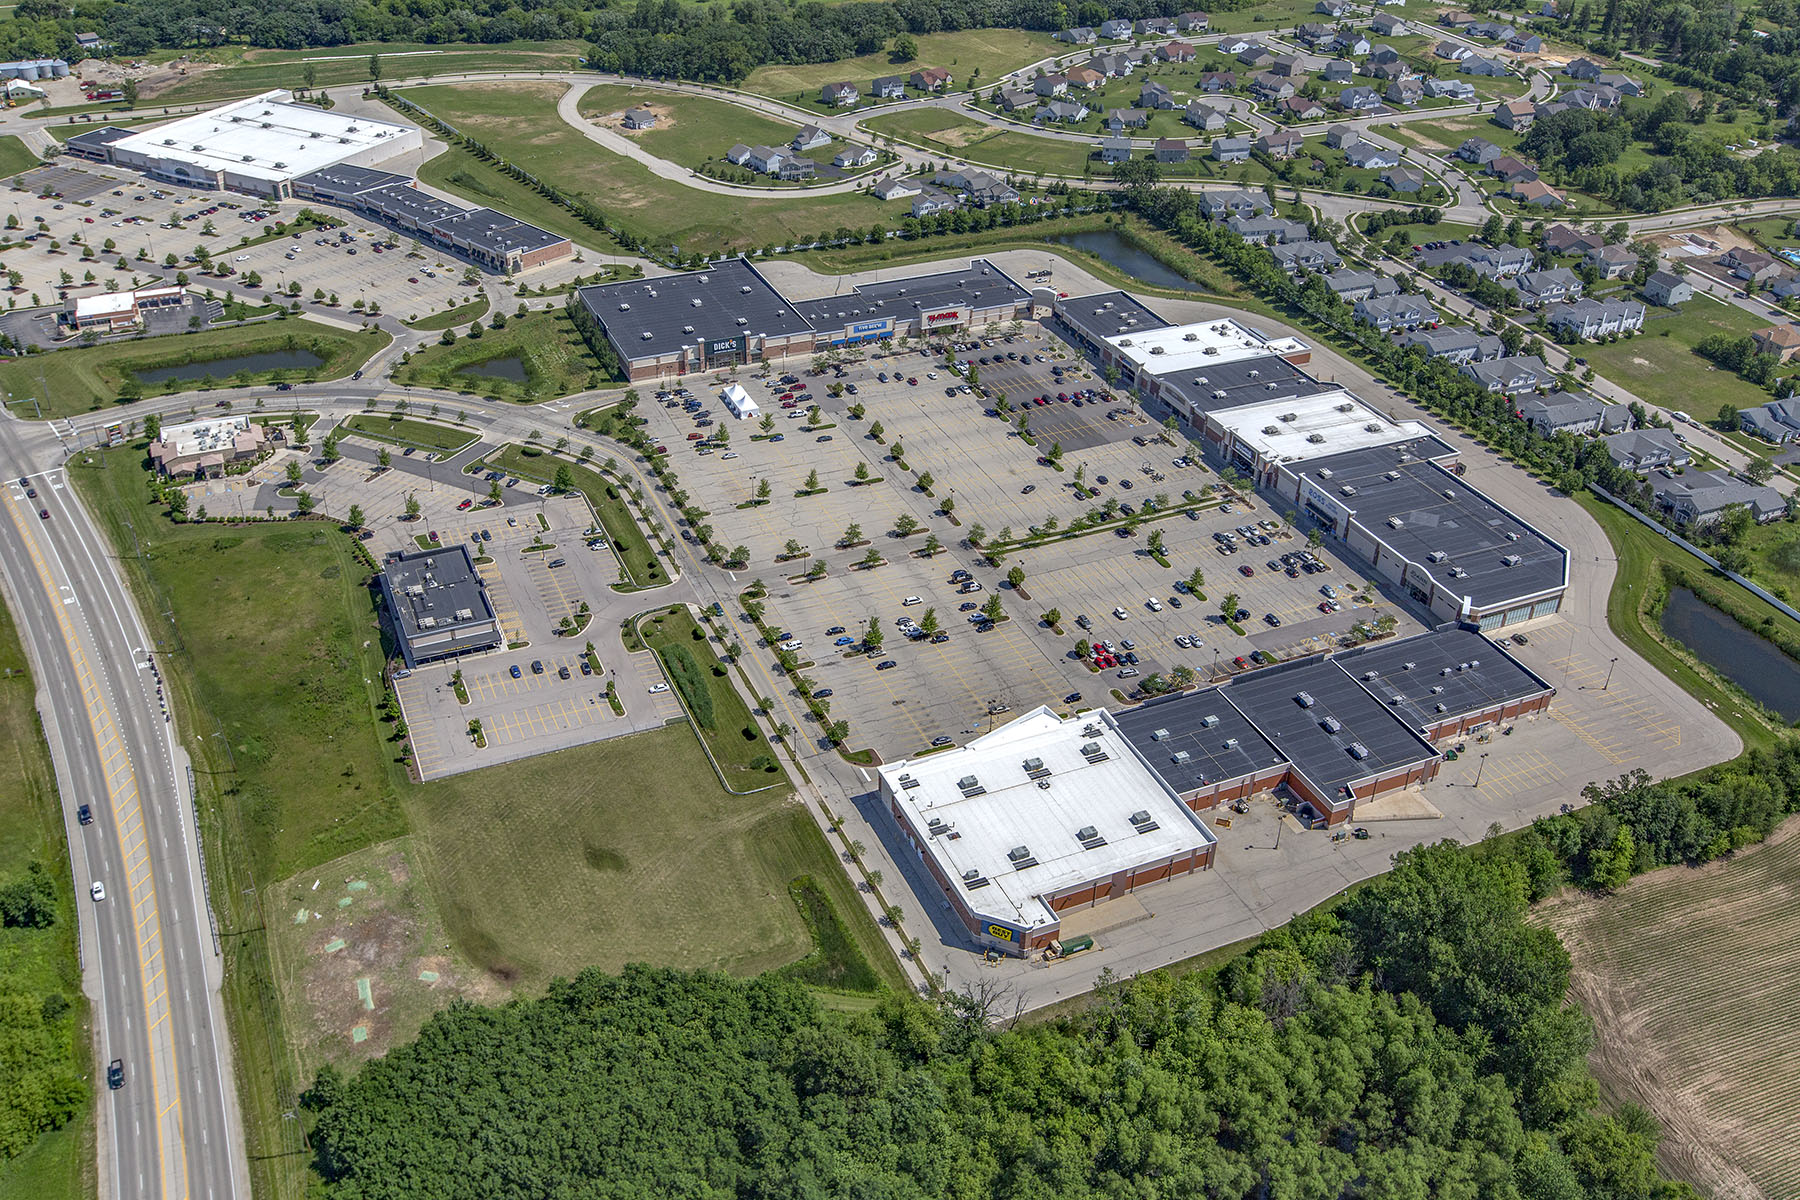 An aerial view of The Shops at Fox River in McHenry, Ill., owned by Time Equities.